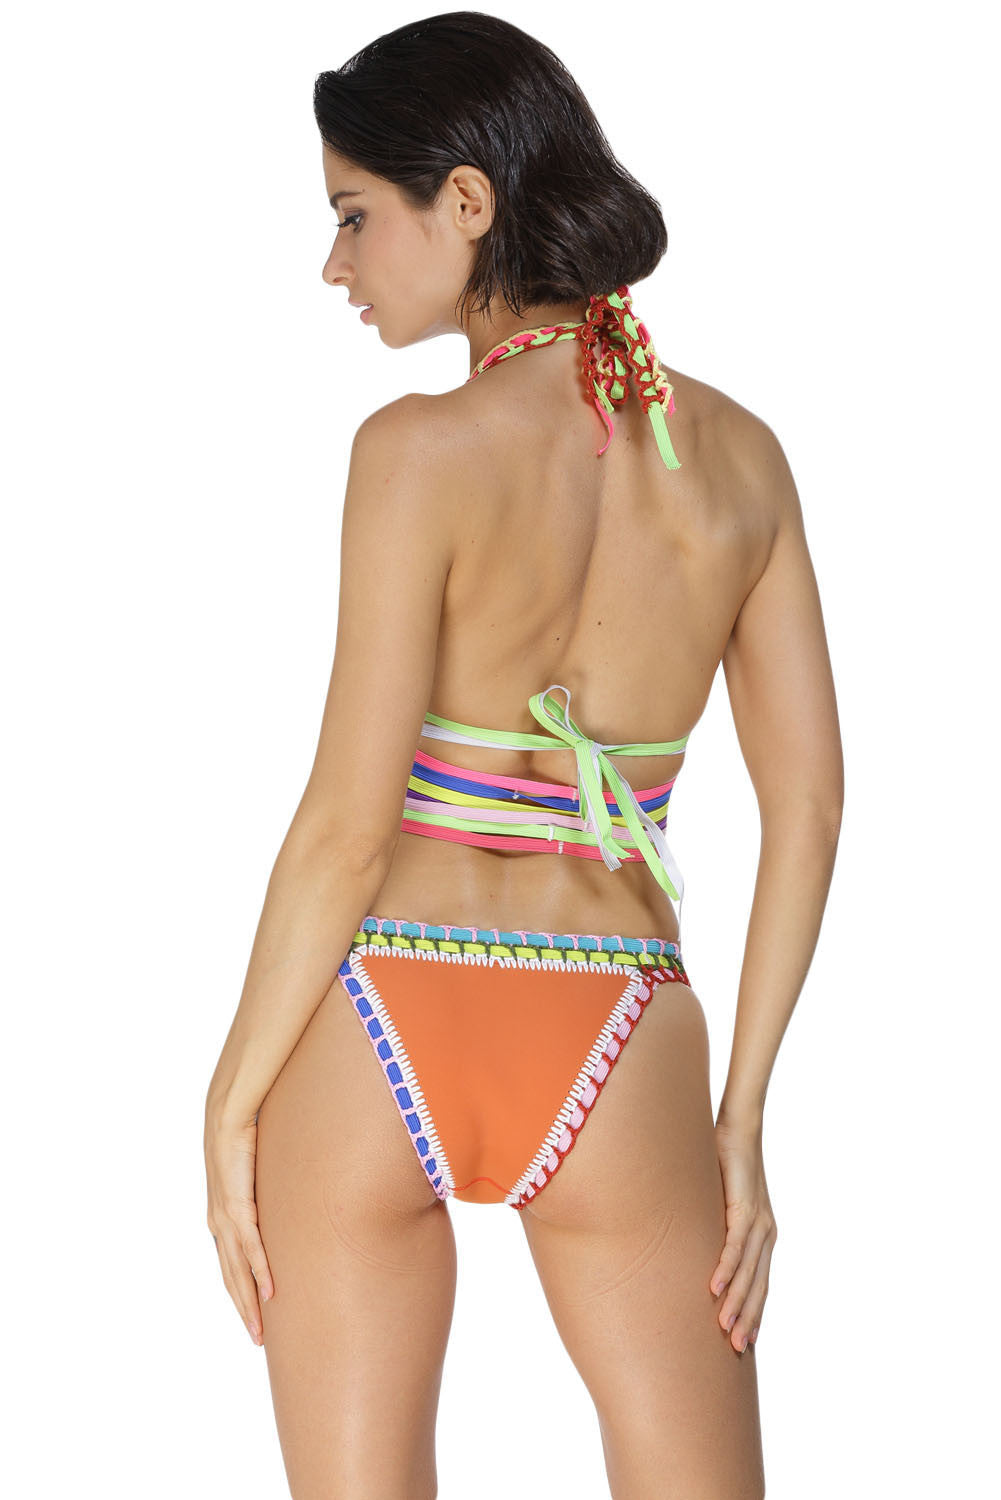 Something Old School Strappy Two-Piece Swimsuit